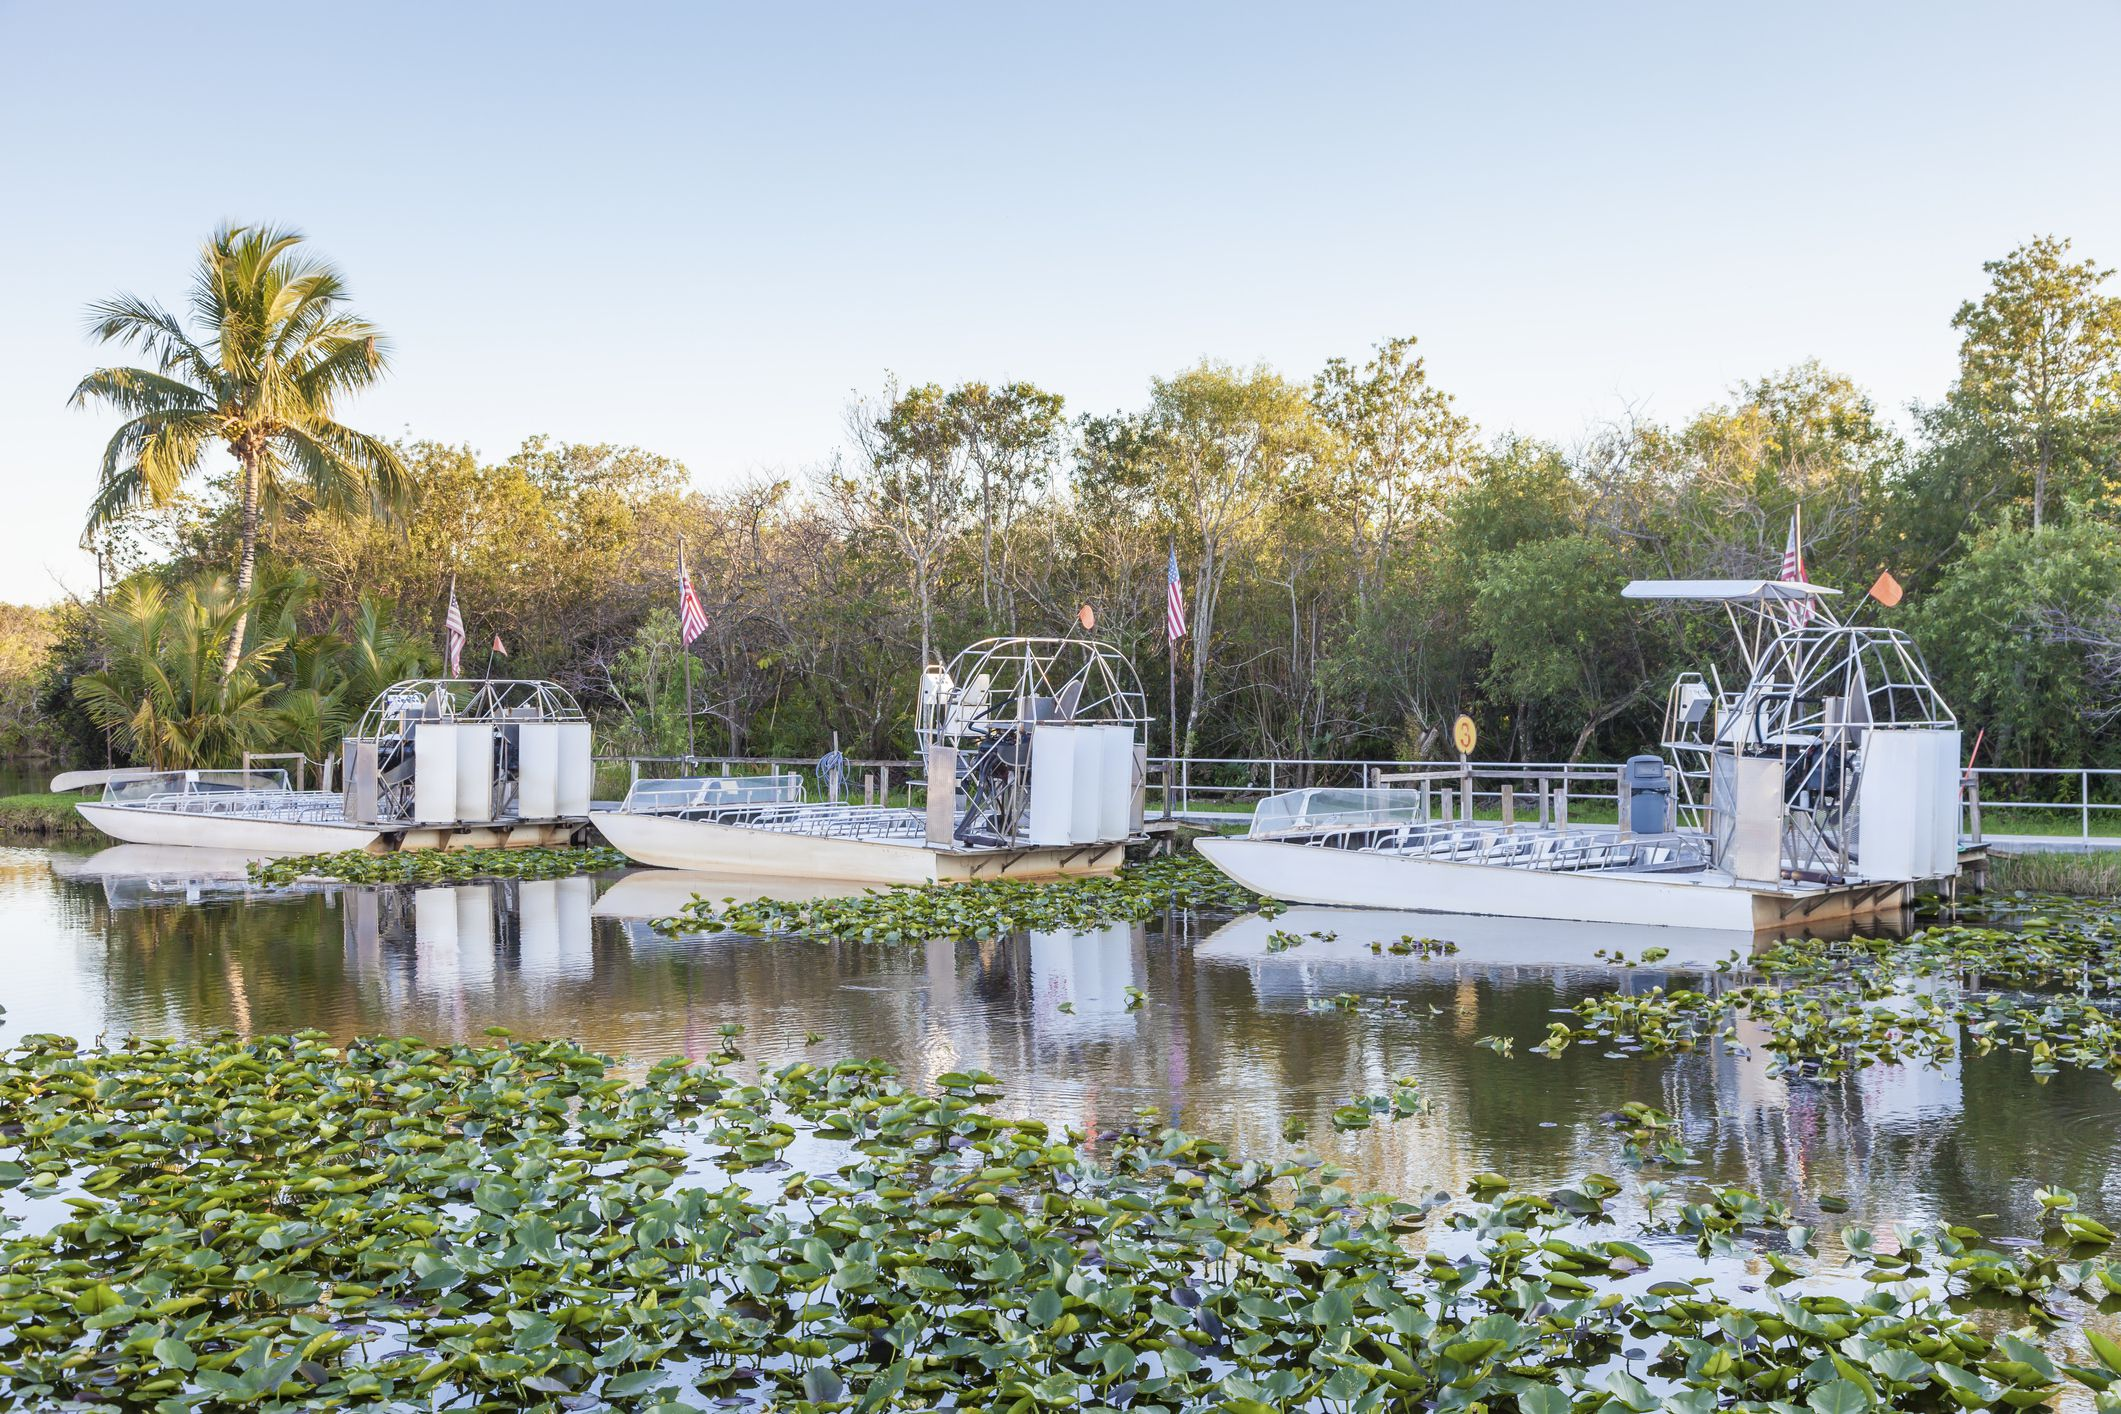 Airboats docked in water